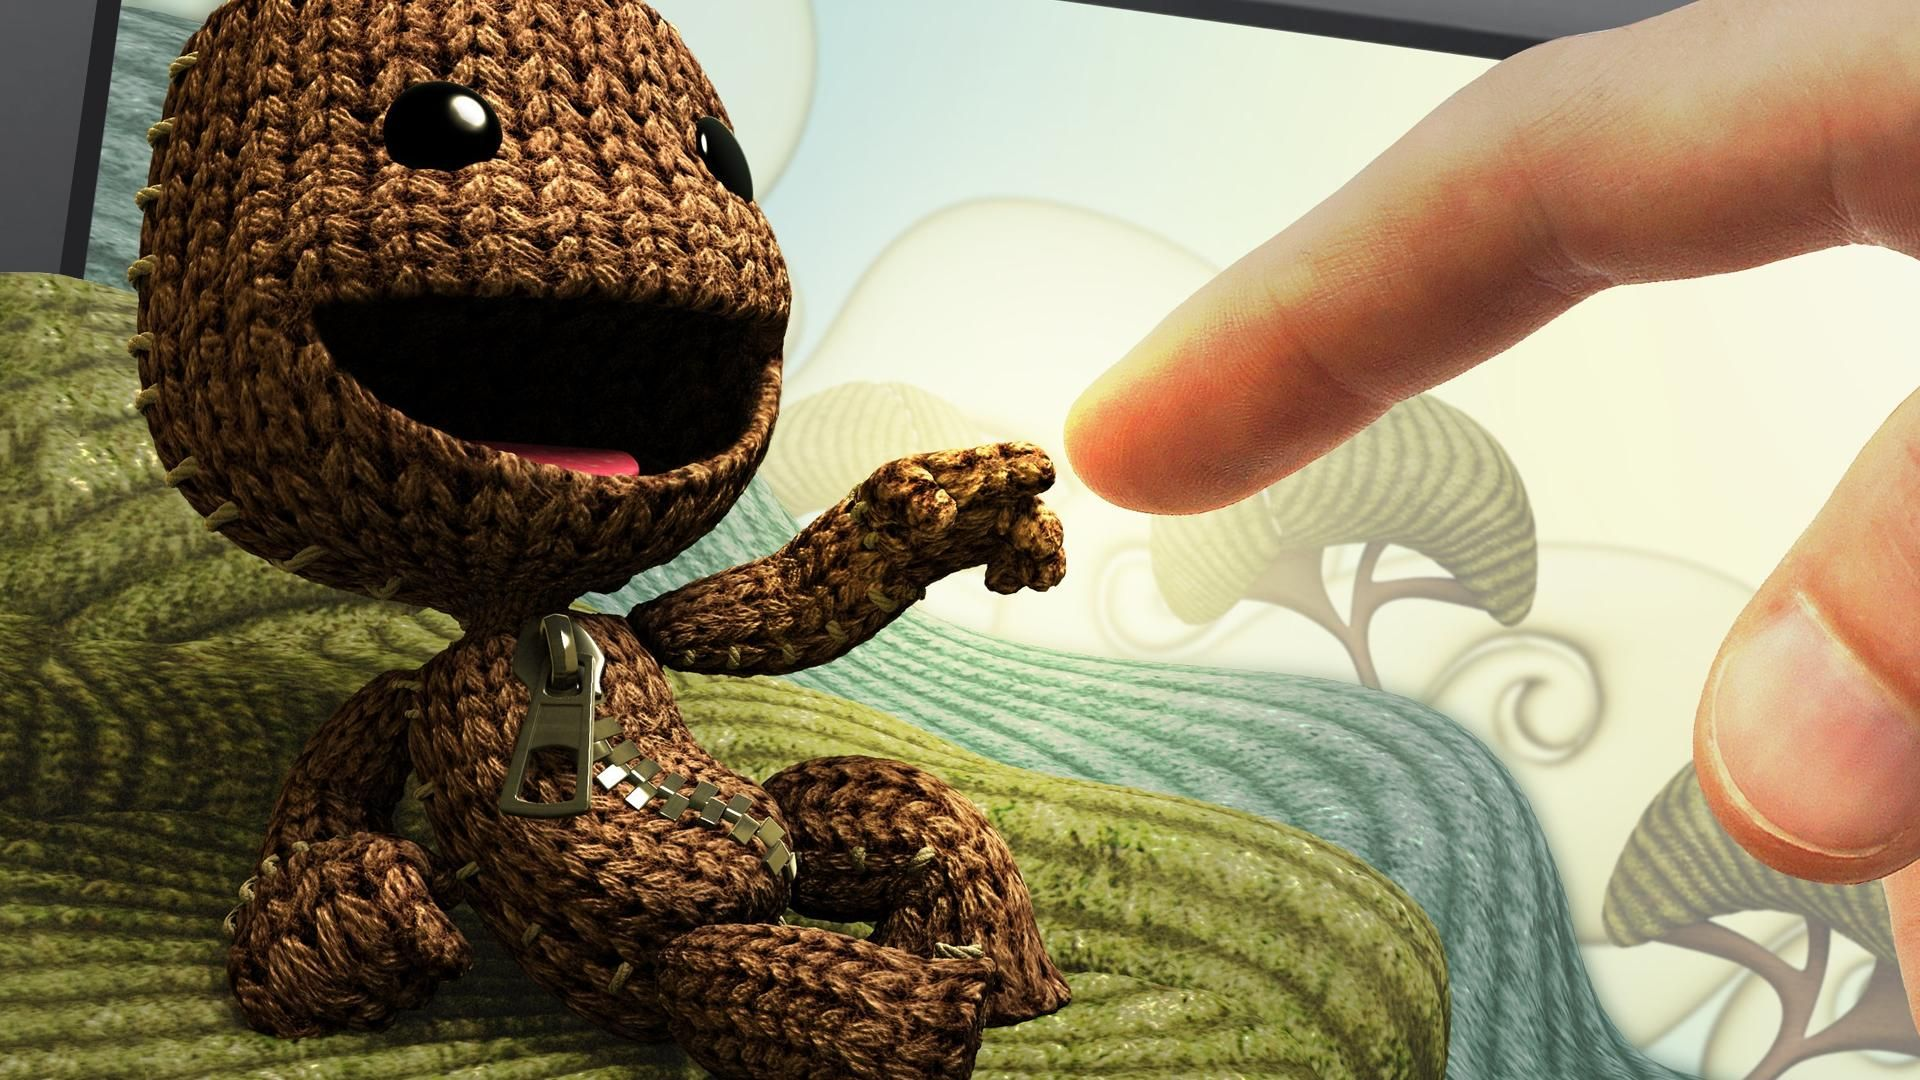 LittleBigPlanet Wallpapers Wallpaper | Wallpapers 4k | Pinterest